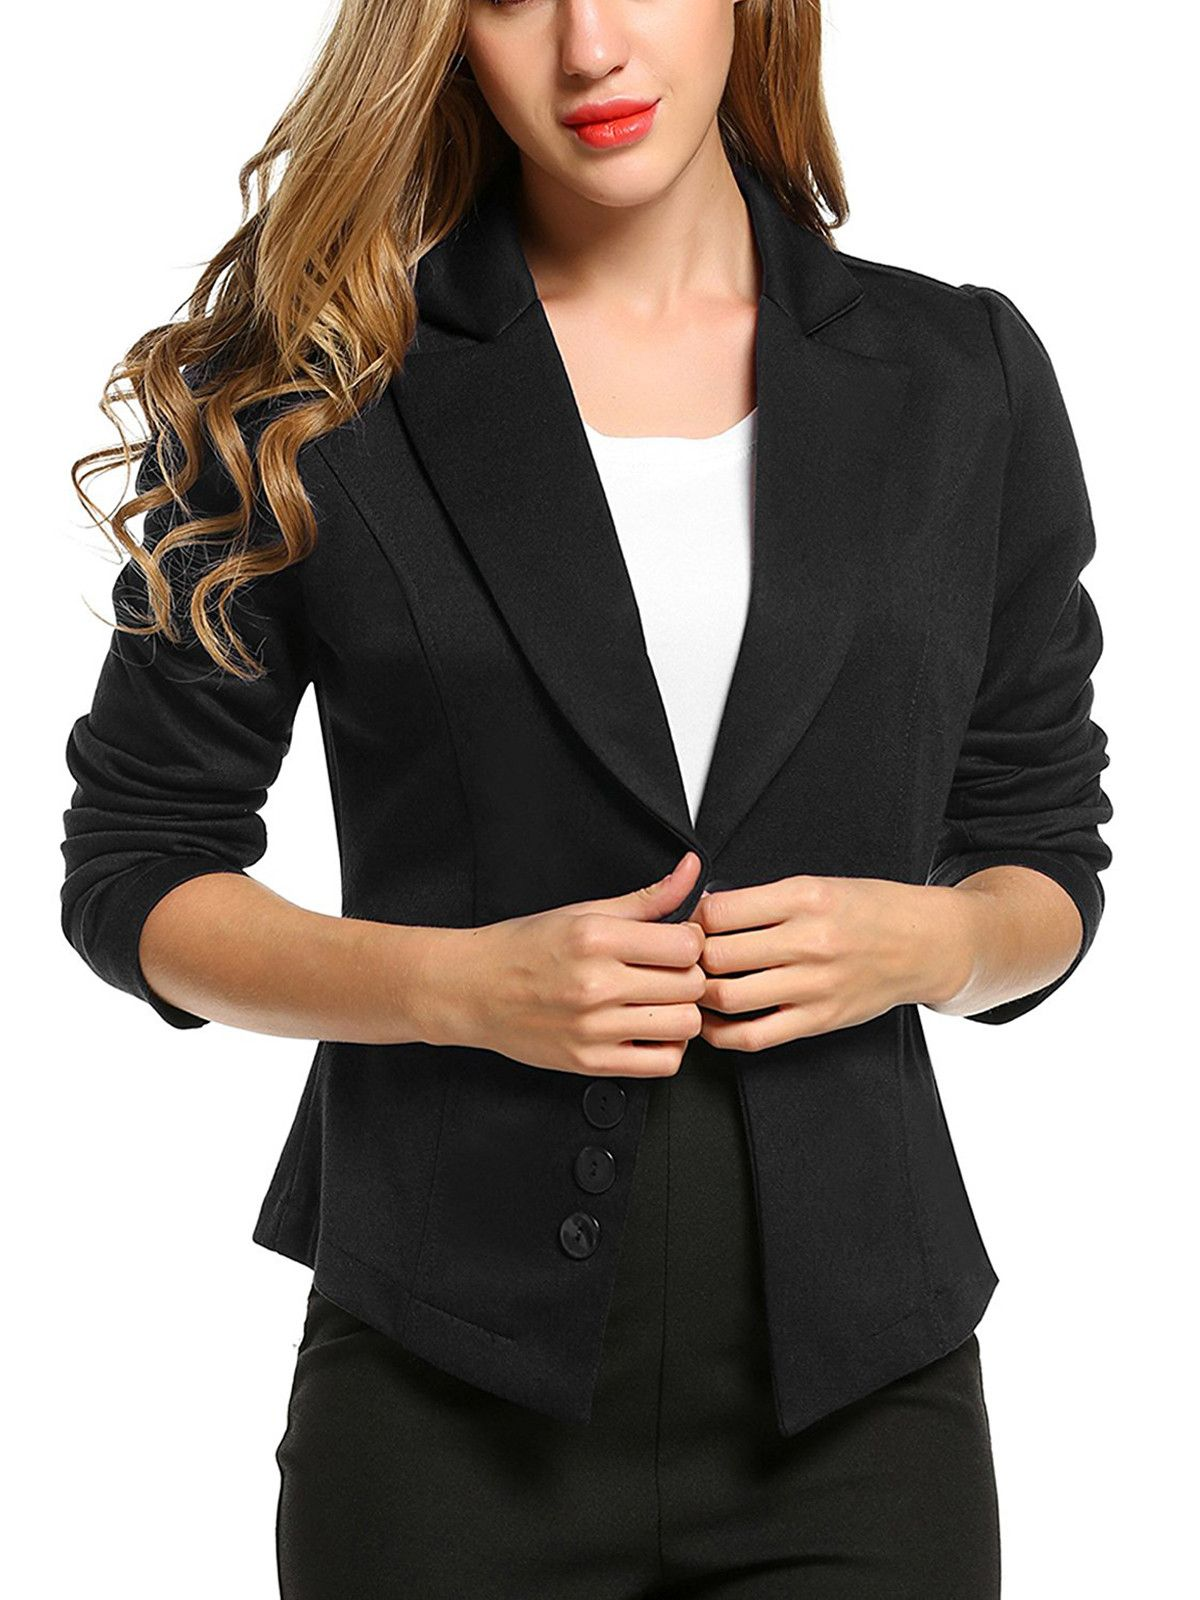 d2ec023d759 Women's Long Sleeve Solid Casual Work Office Slim One Button Blazer-Black.  Find this Pin and more on Jackets ...